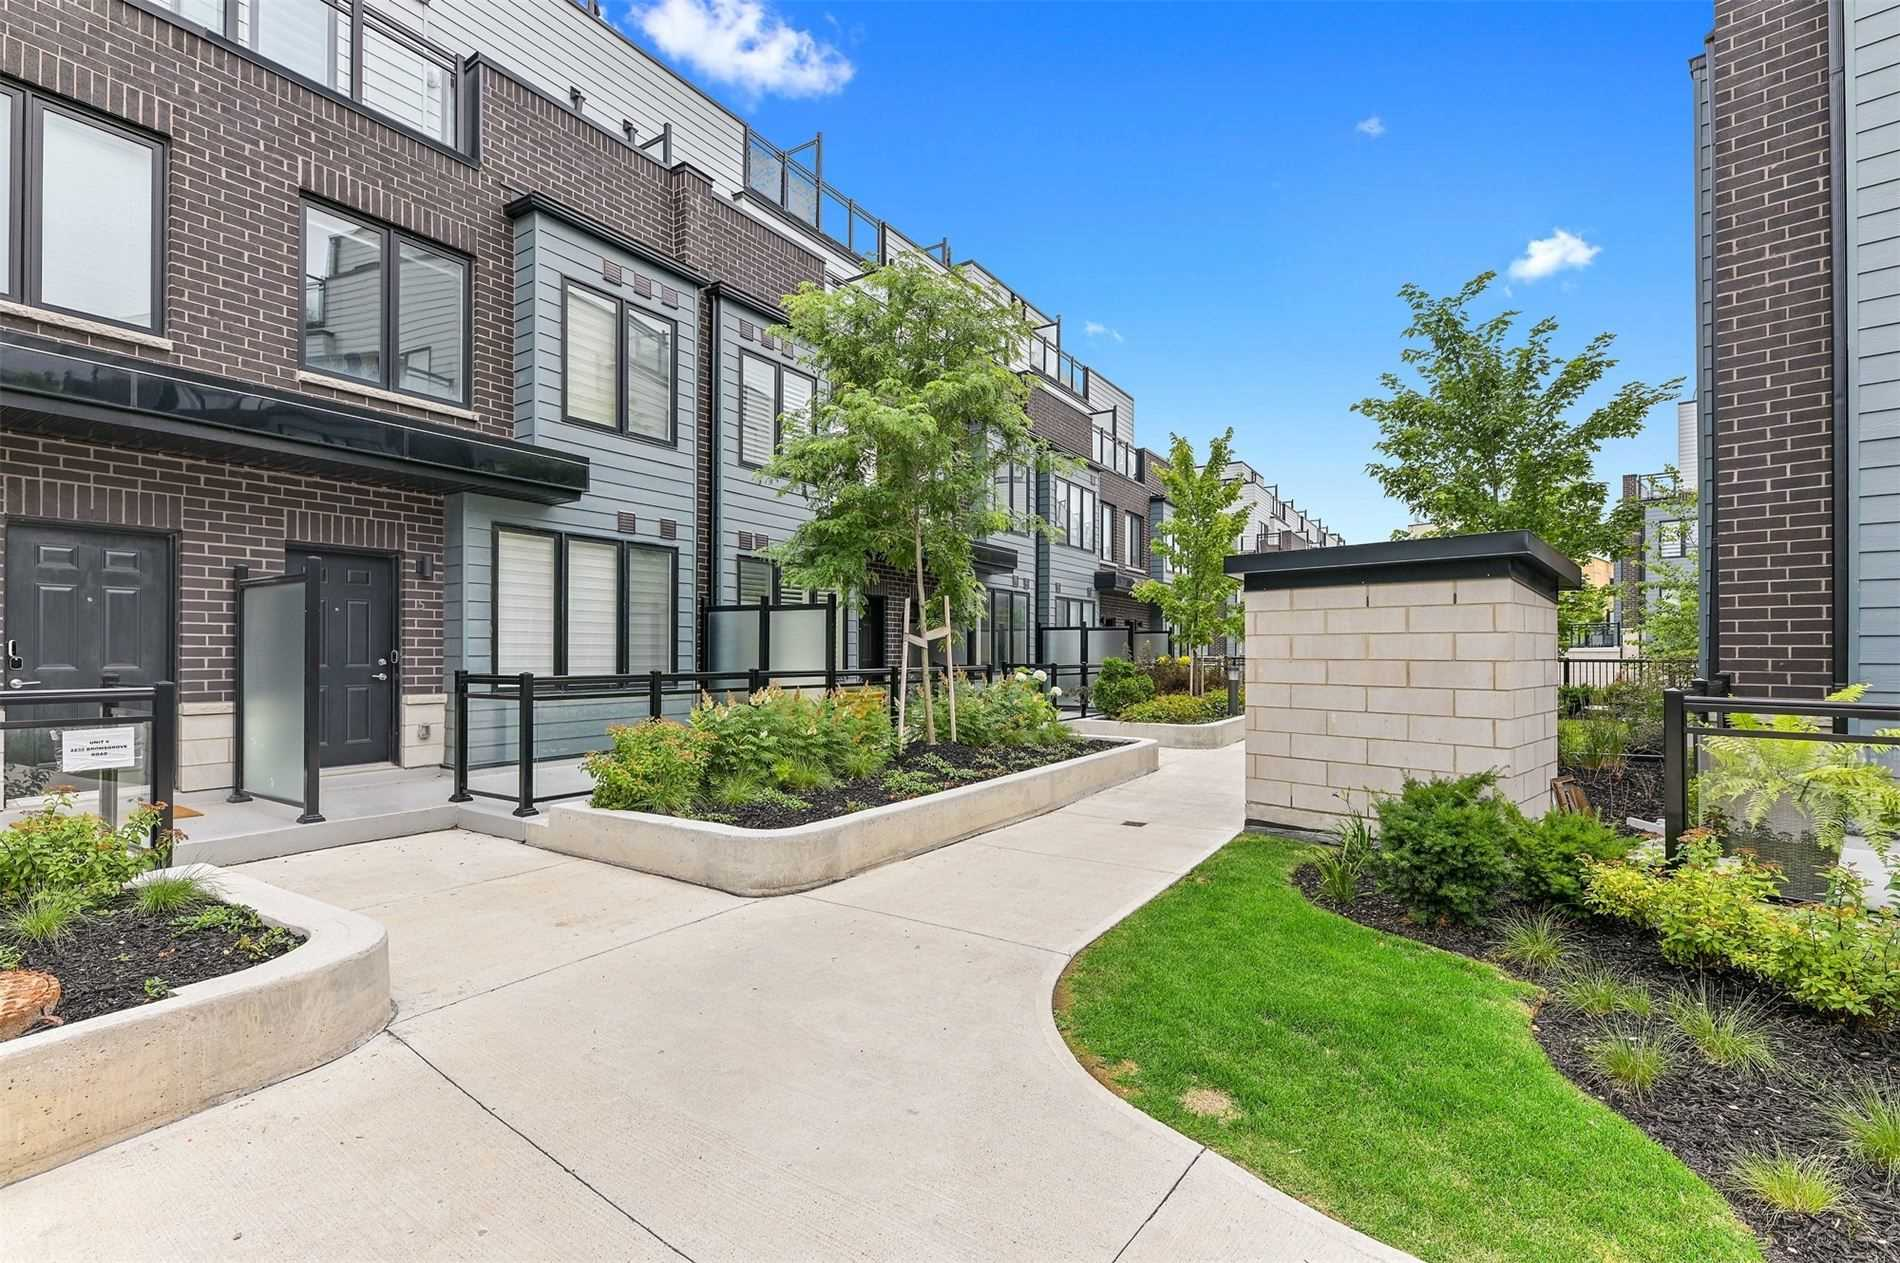 Condo Townhouse For Sale In Mississauga , 3 Bedrooms Bedrooms, ,3 BathroomsBathrooms,Condo Townhouse,For Sale,3,Bromsgrove